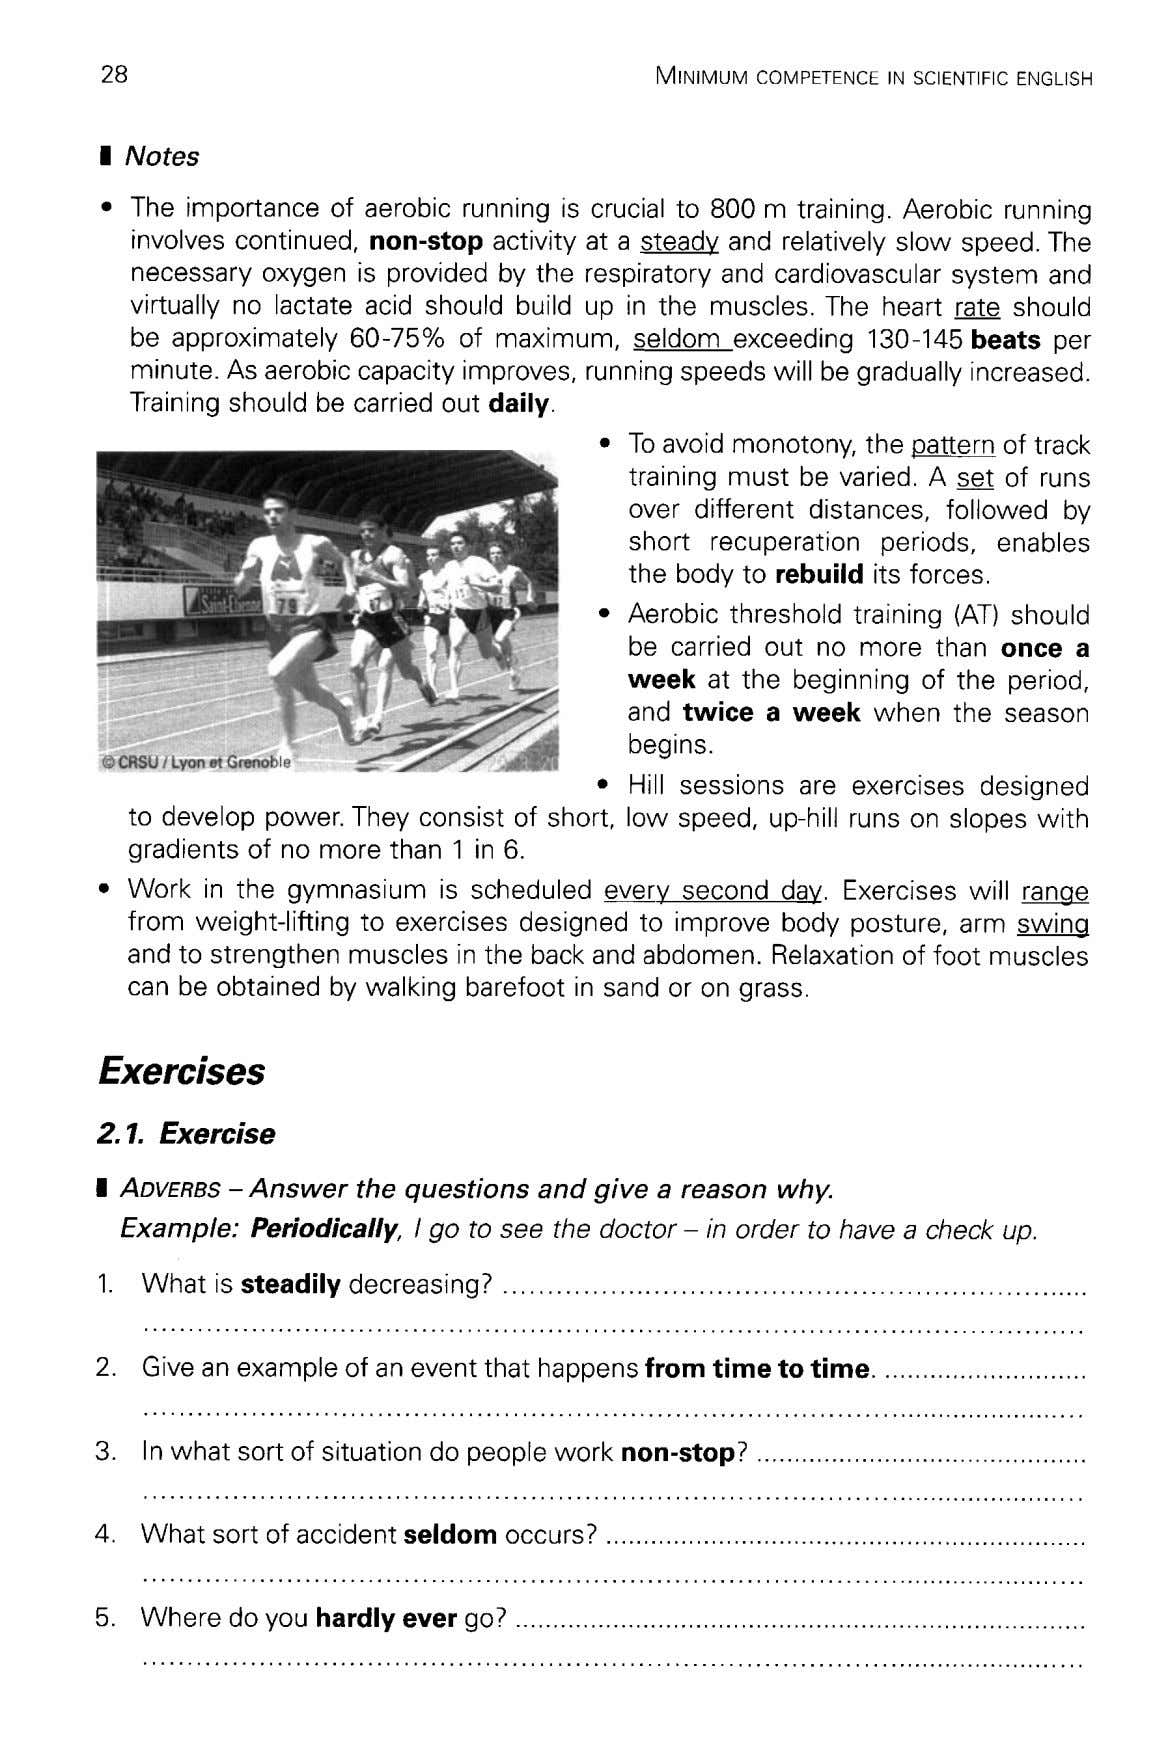 28 MINIMUM COMPETENCE IN SCIENTIFIC ENGLISH I Notes • The importance of aerobic running is